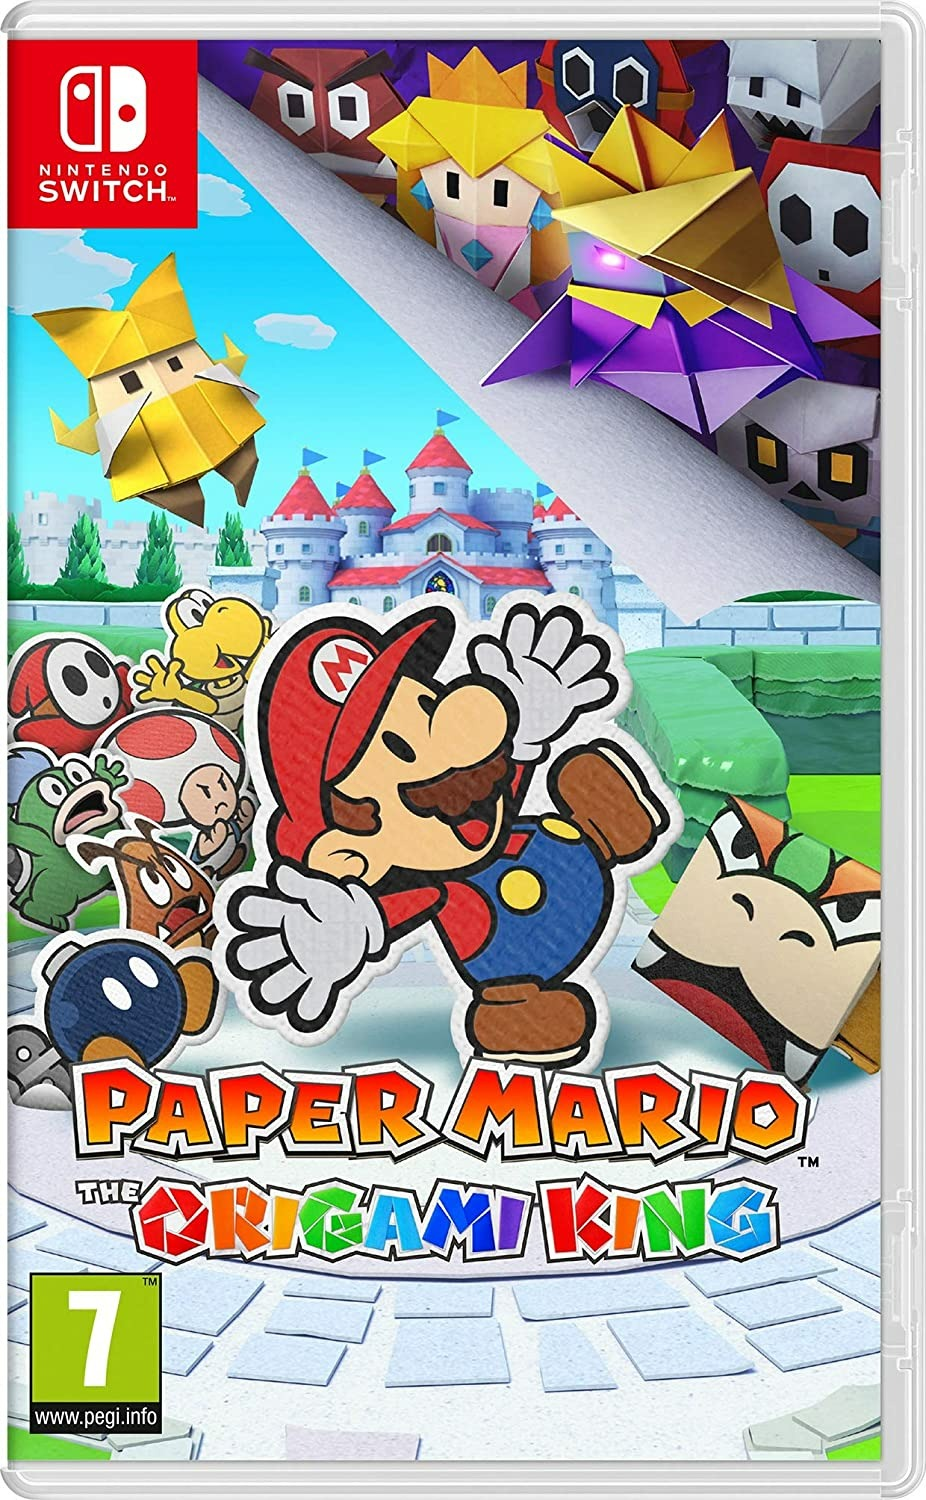 Paper Mario The Origami King Switch - Switch - Spil -  - 0045496426385 - 17/7-2020